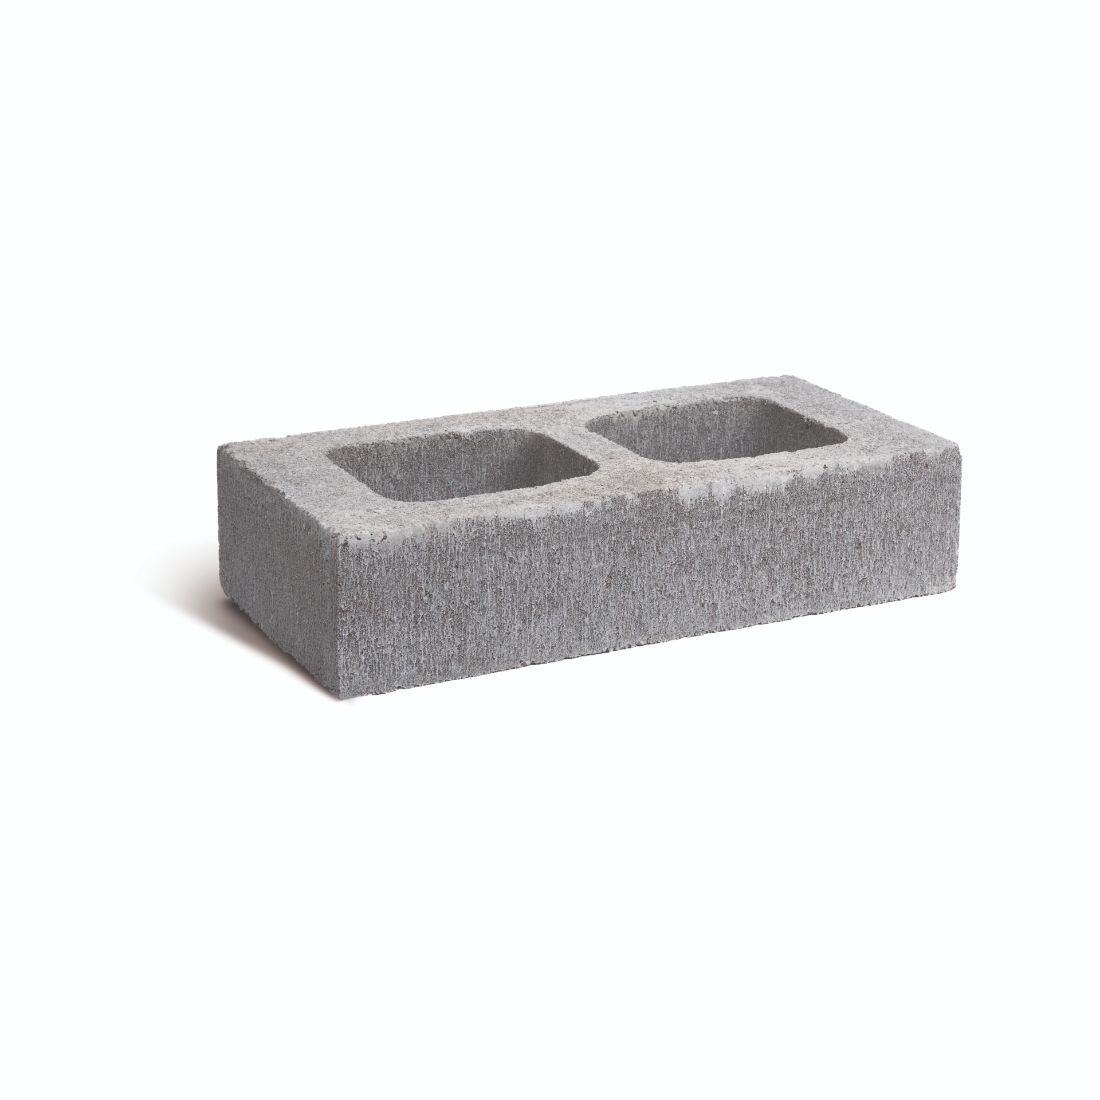 H20.04 Plain End Half High Block 390 x 190 x 90mm